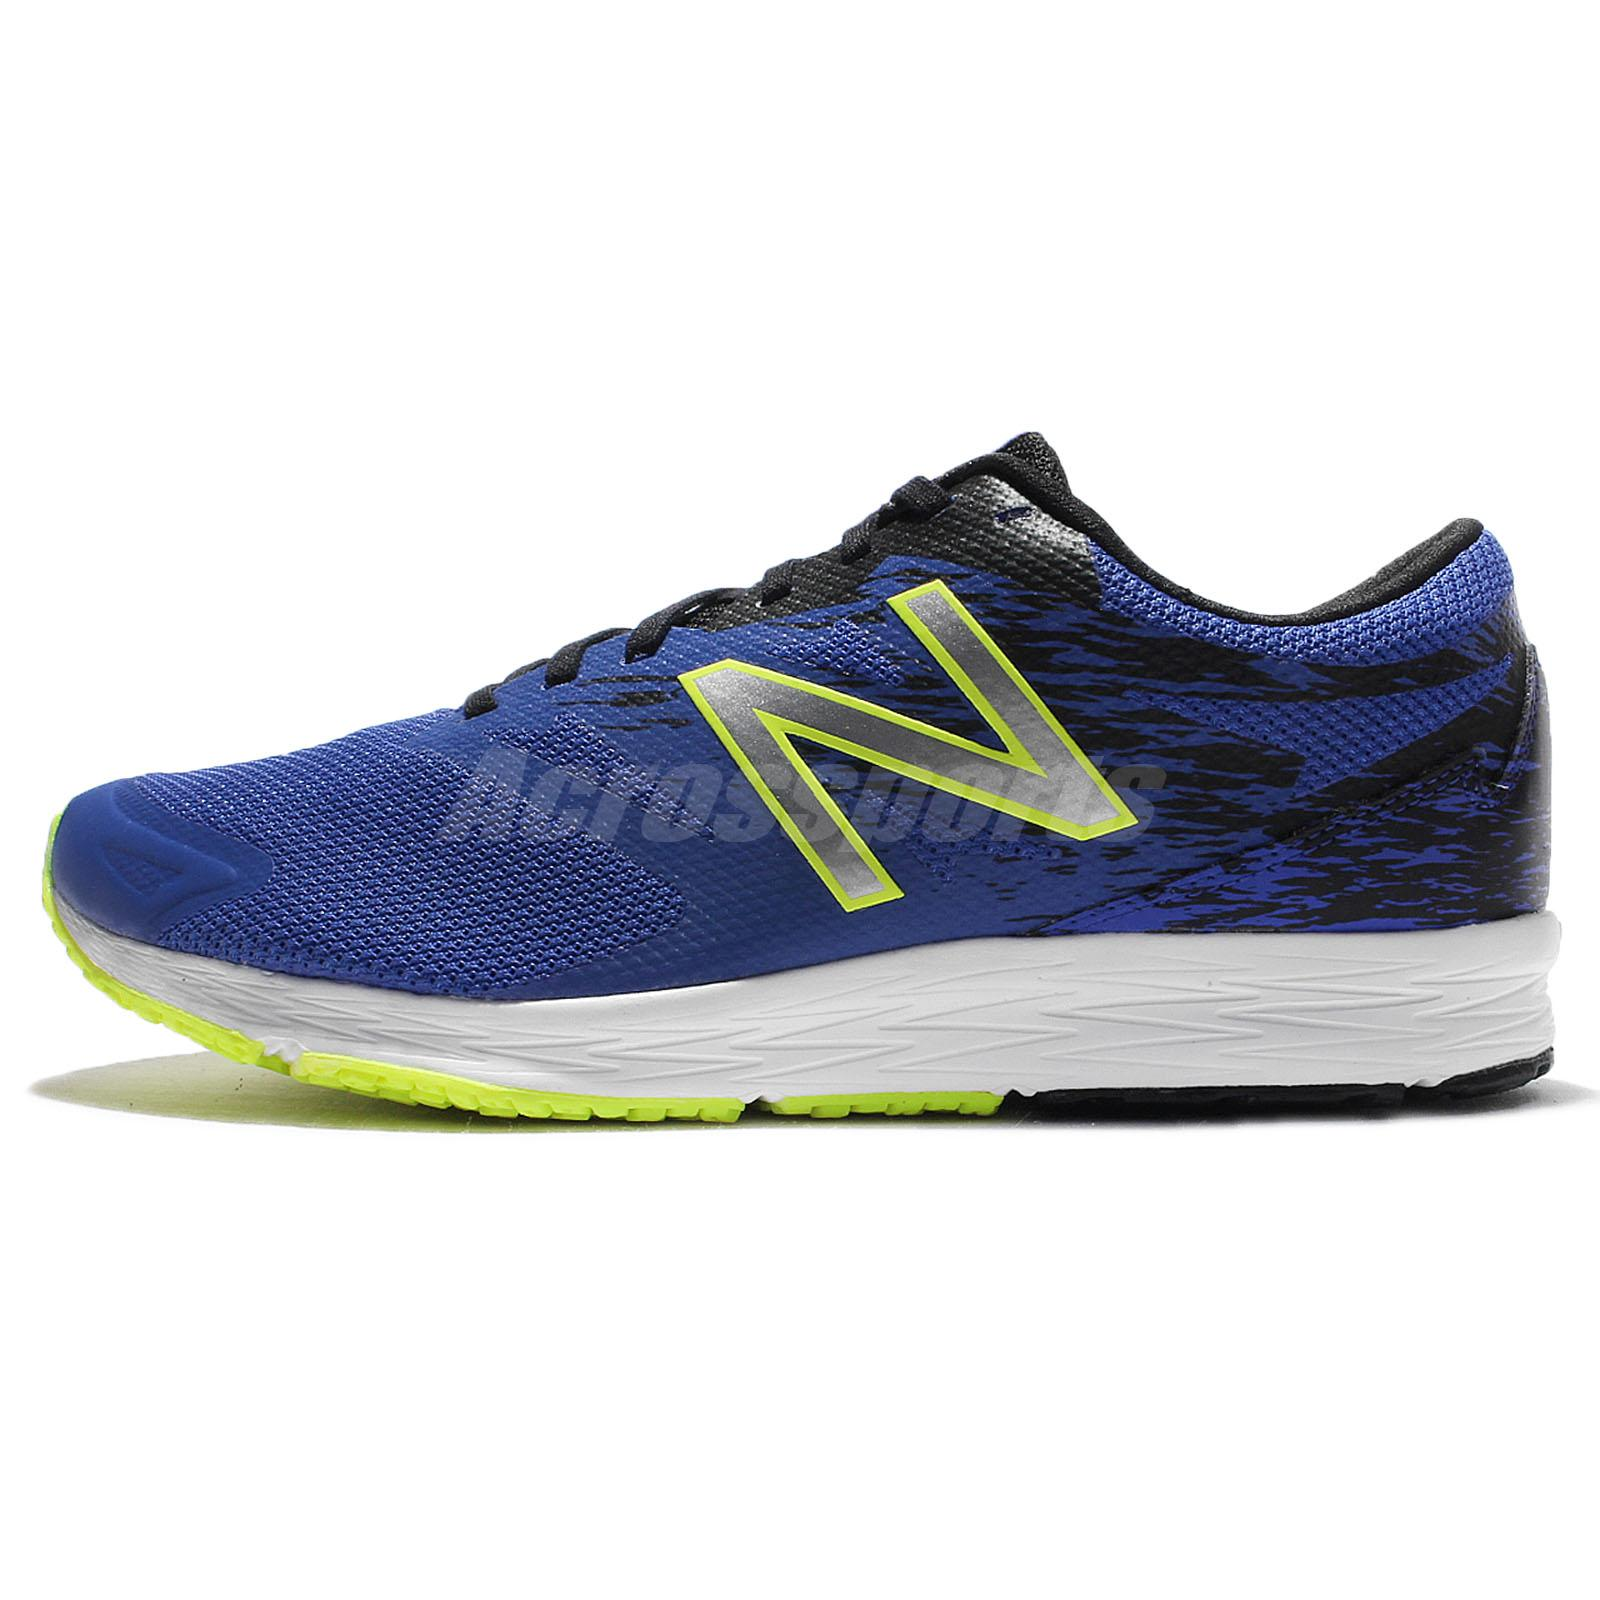 New Balance MFLSHLU1 D Blue Volt Men Running Shoes Sneakers Trainers  MFLSHLU1D